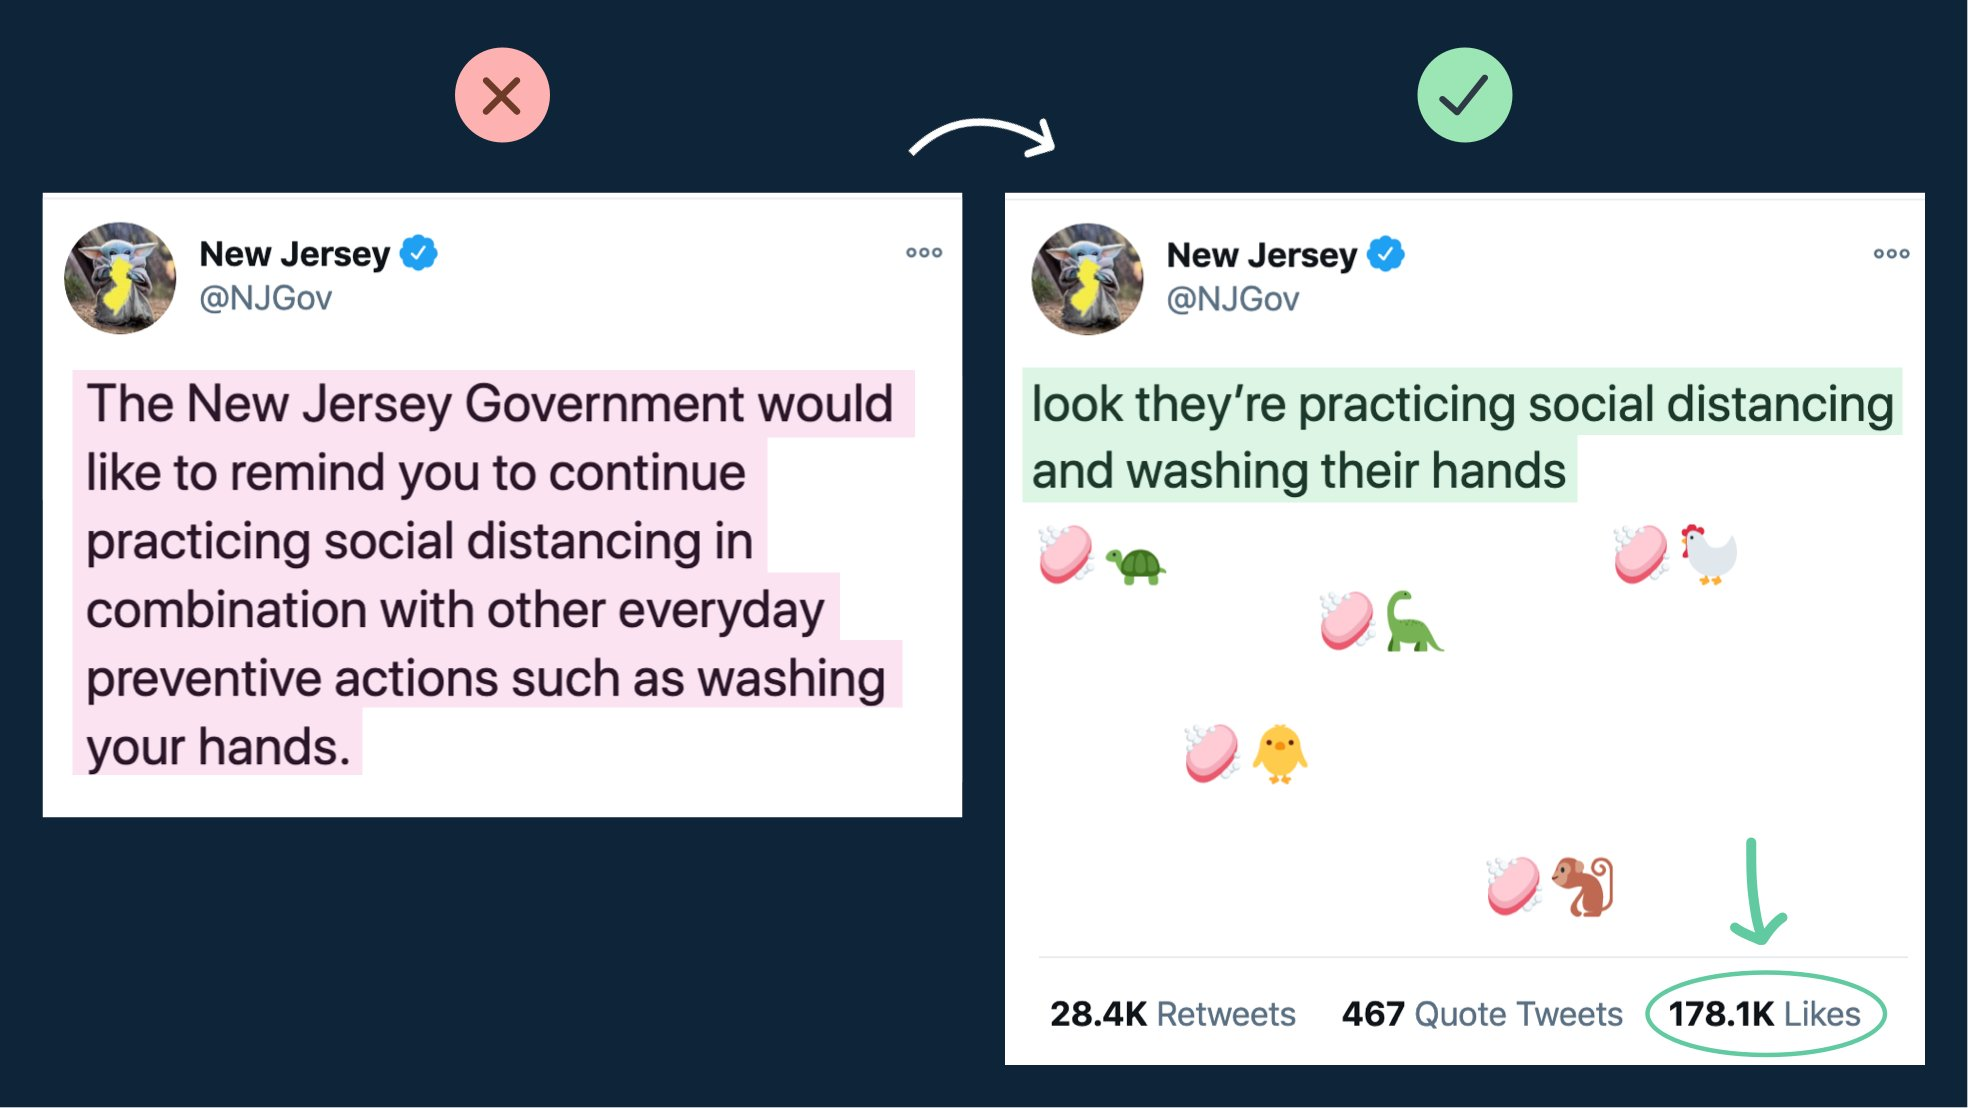 Photo of a tweet from NJGov